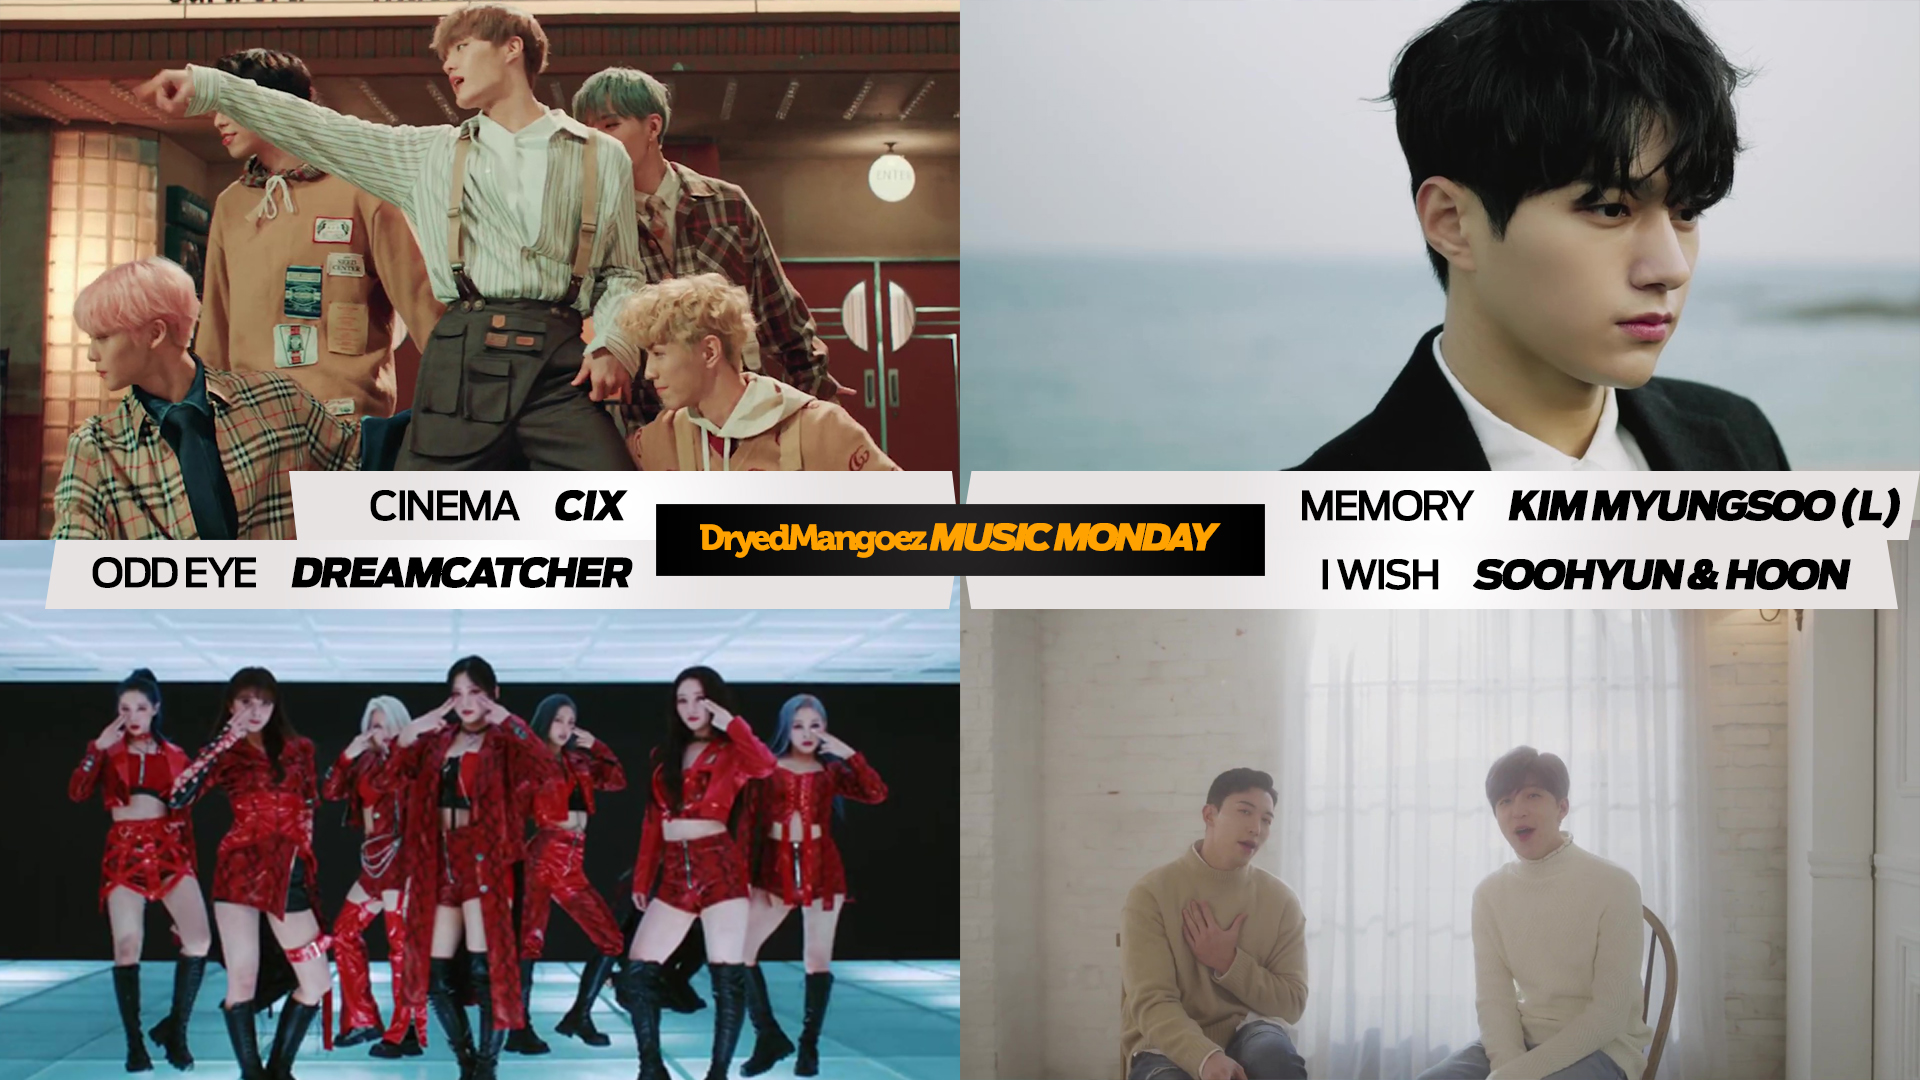 Music Monday, February 8, 2021 – CIX, Kim Myungsoo (L), Dreamcatcher and U-KISS' Soohyun & Hoon